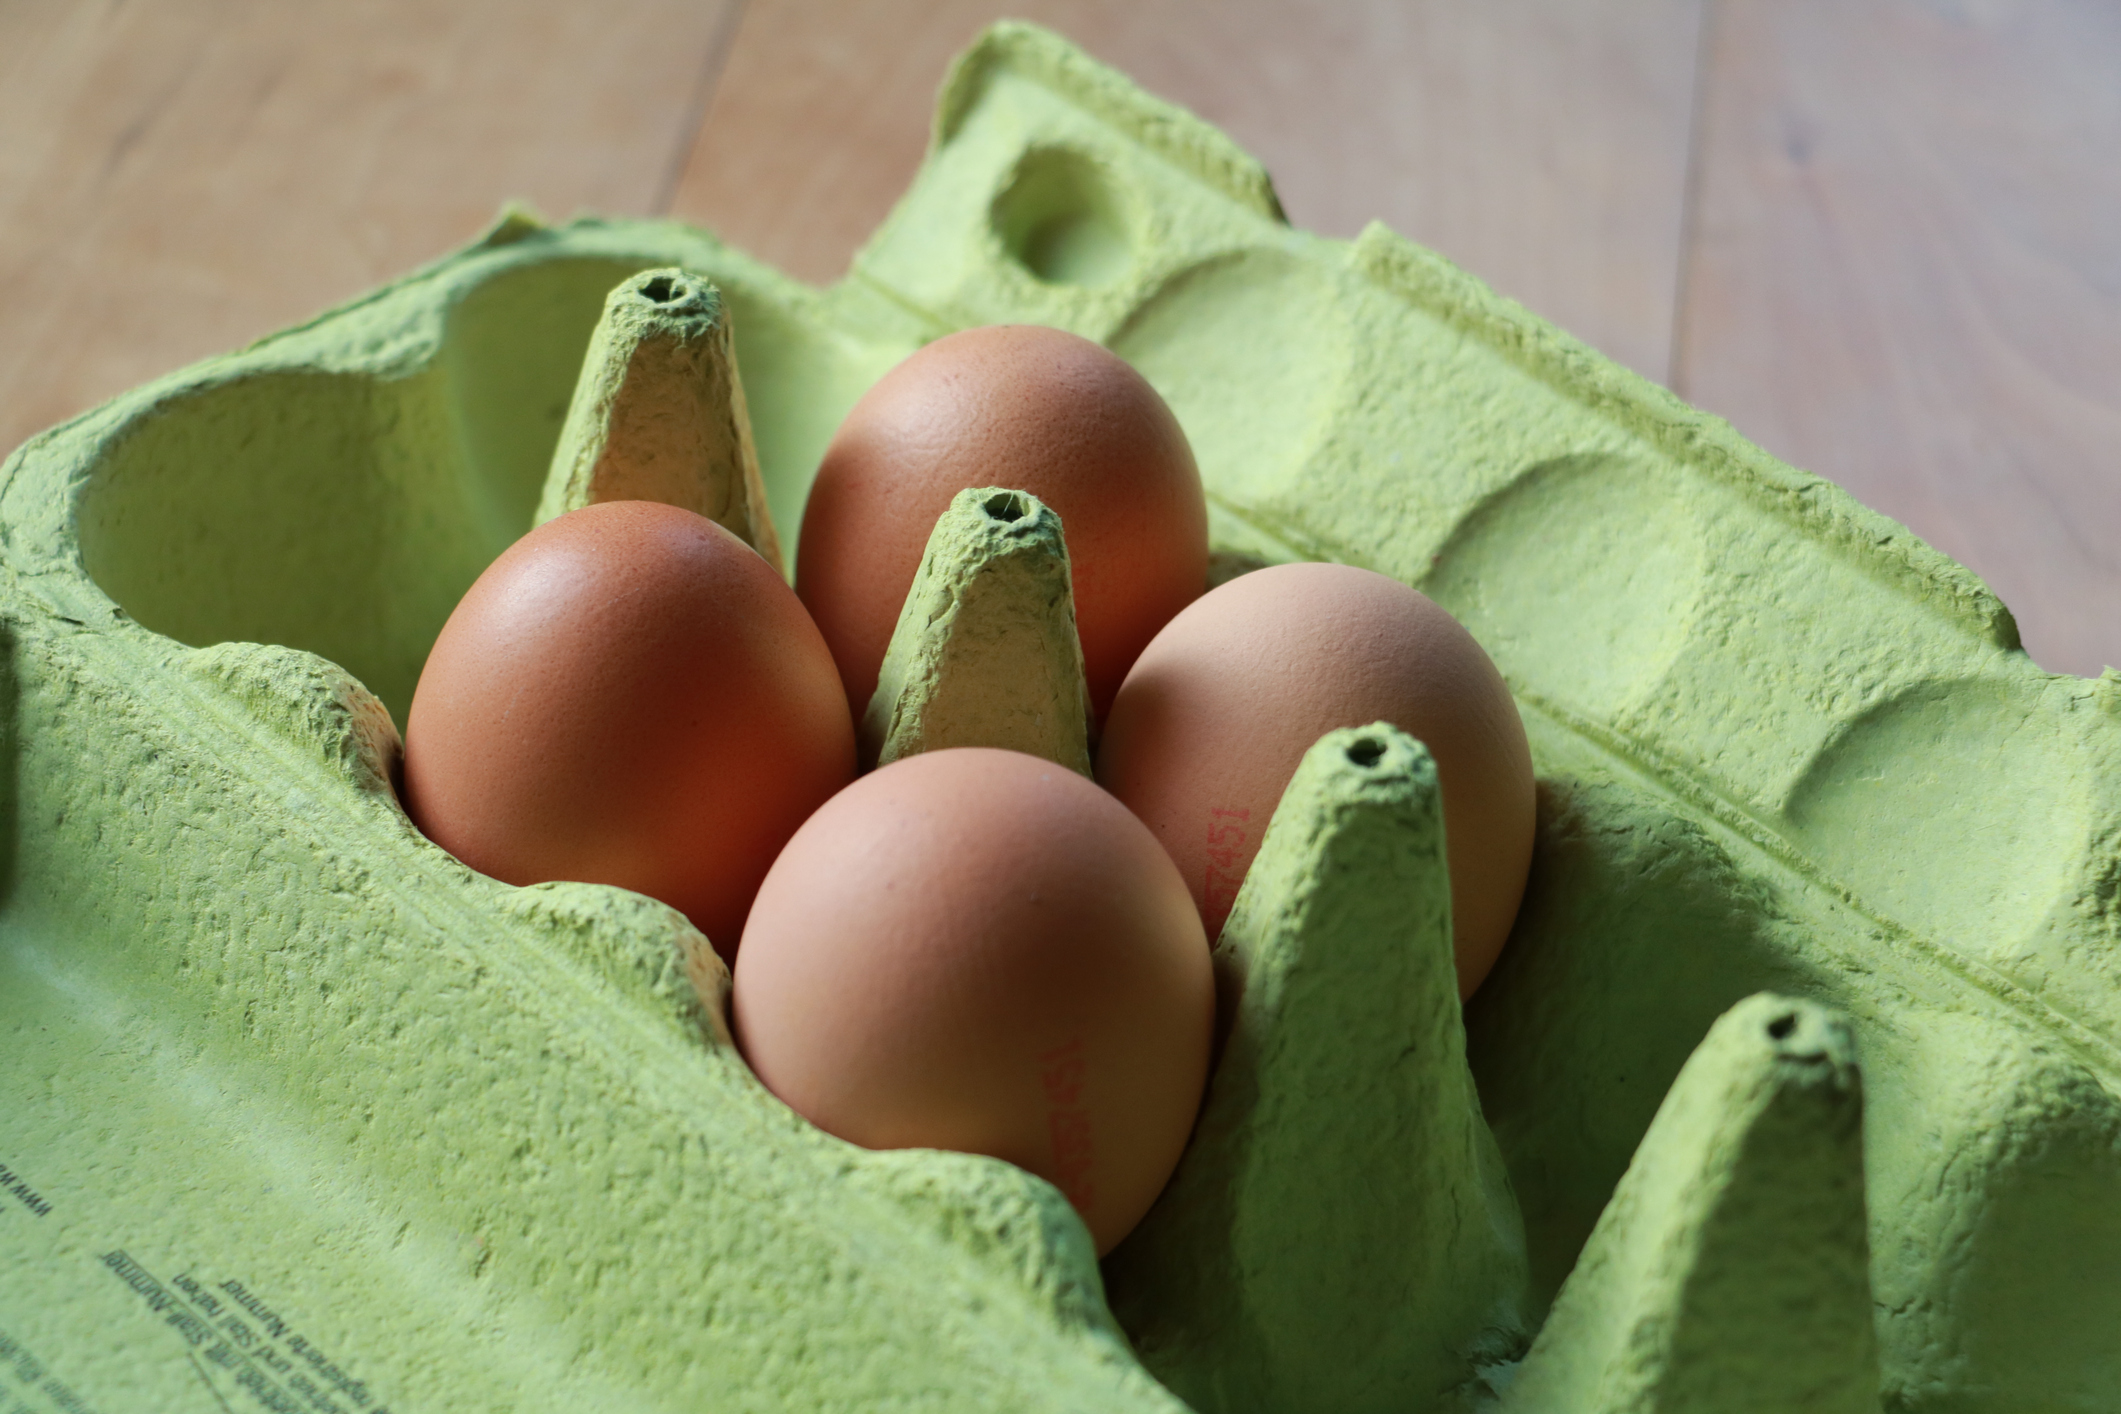 Does hard-boiling an egg kill salmonella?